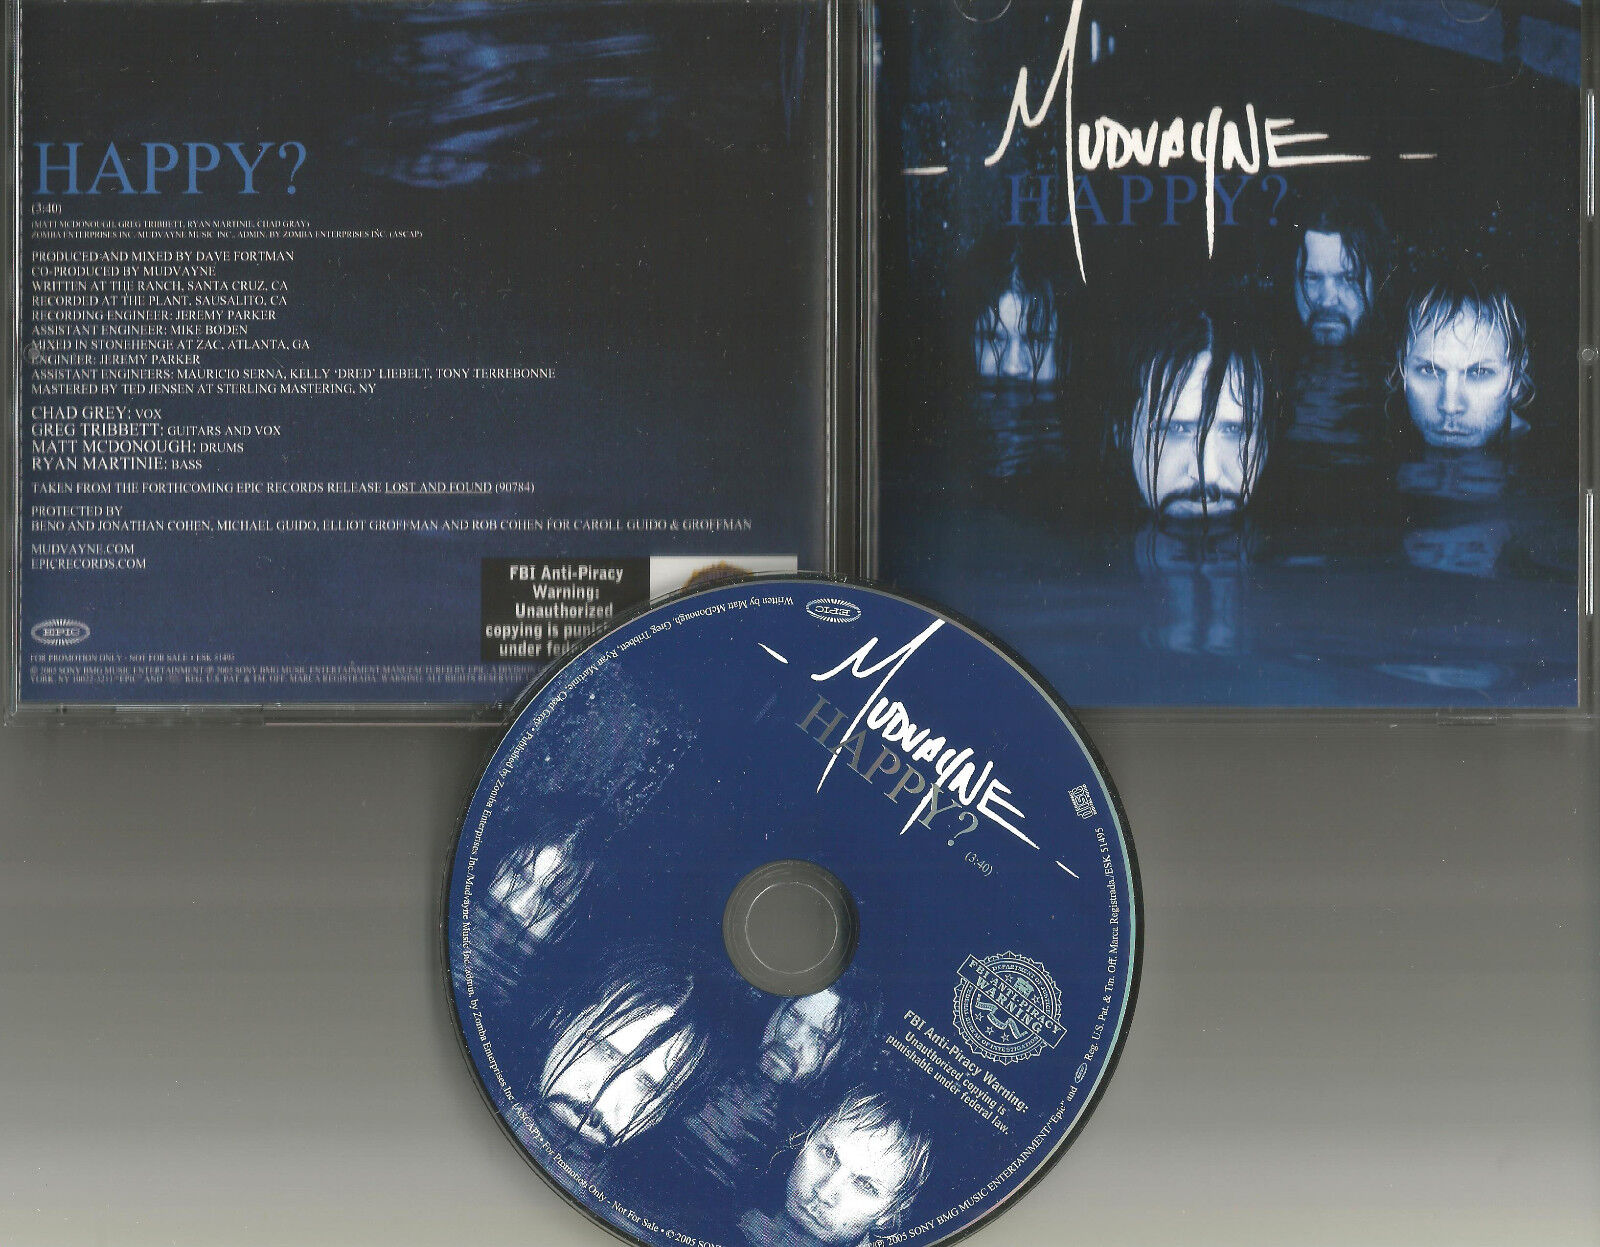 MUDVAYNE Happy PICTURE DISC PROMO Radio DJ CD Single 2005 USA ESK 51495